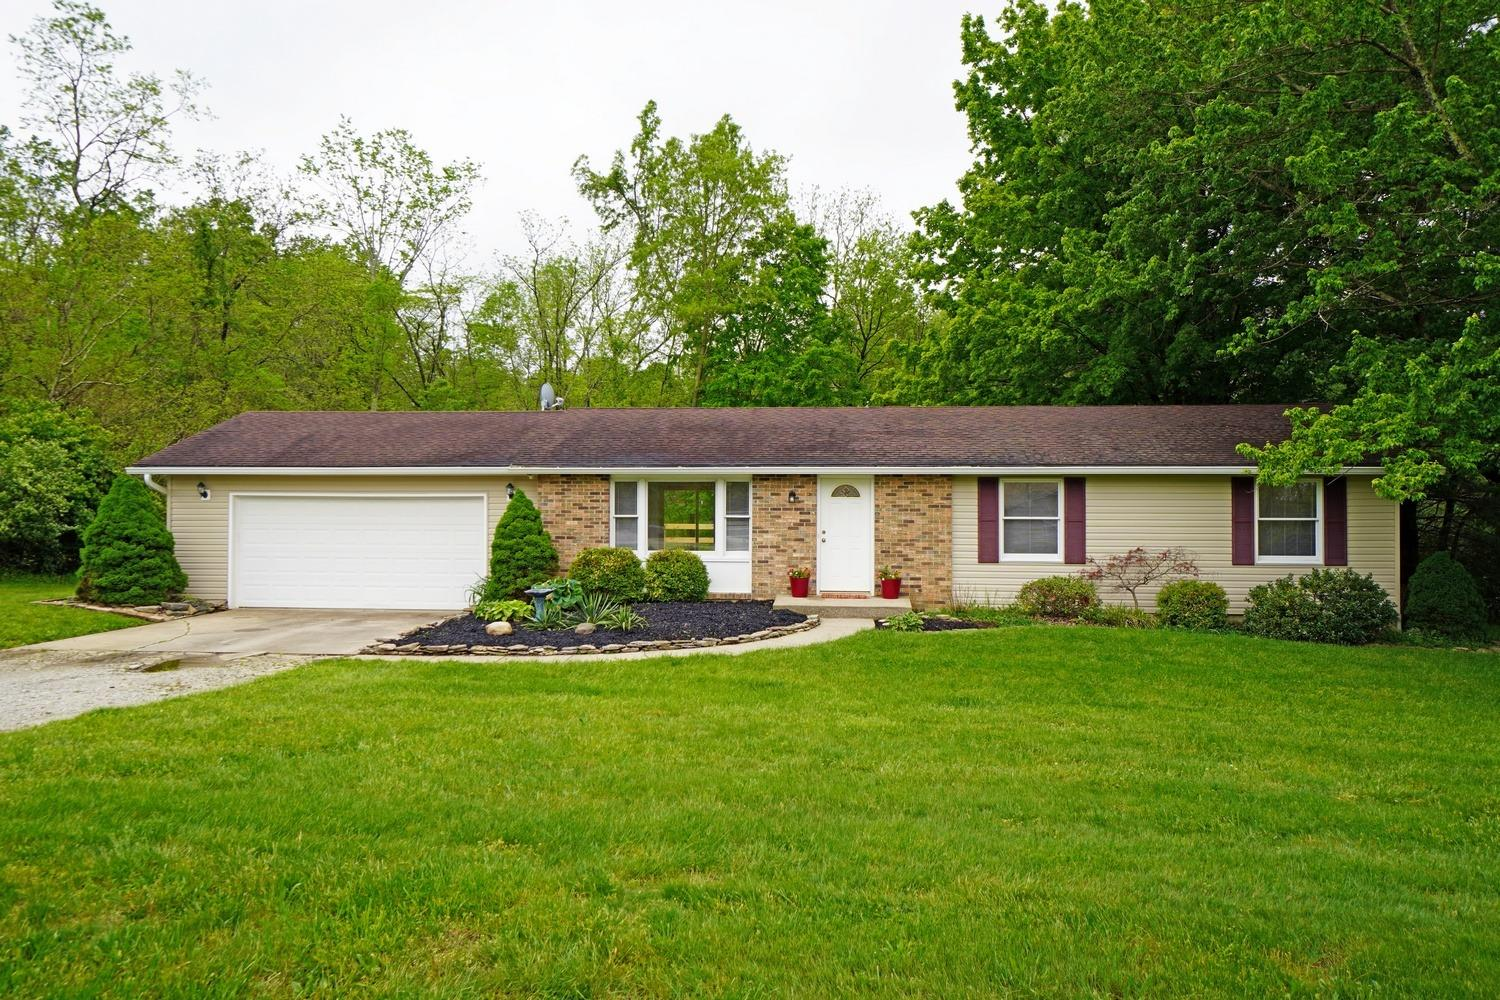 Photo 1 for 2588 Poplar Ridge Dr Tate Twp., OH 45106